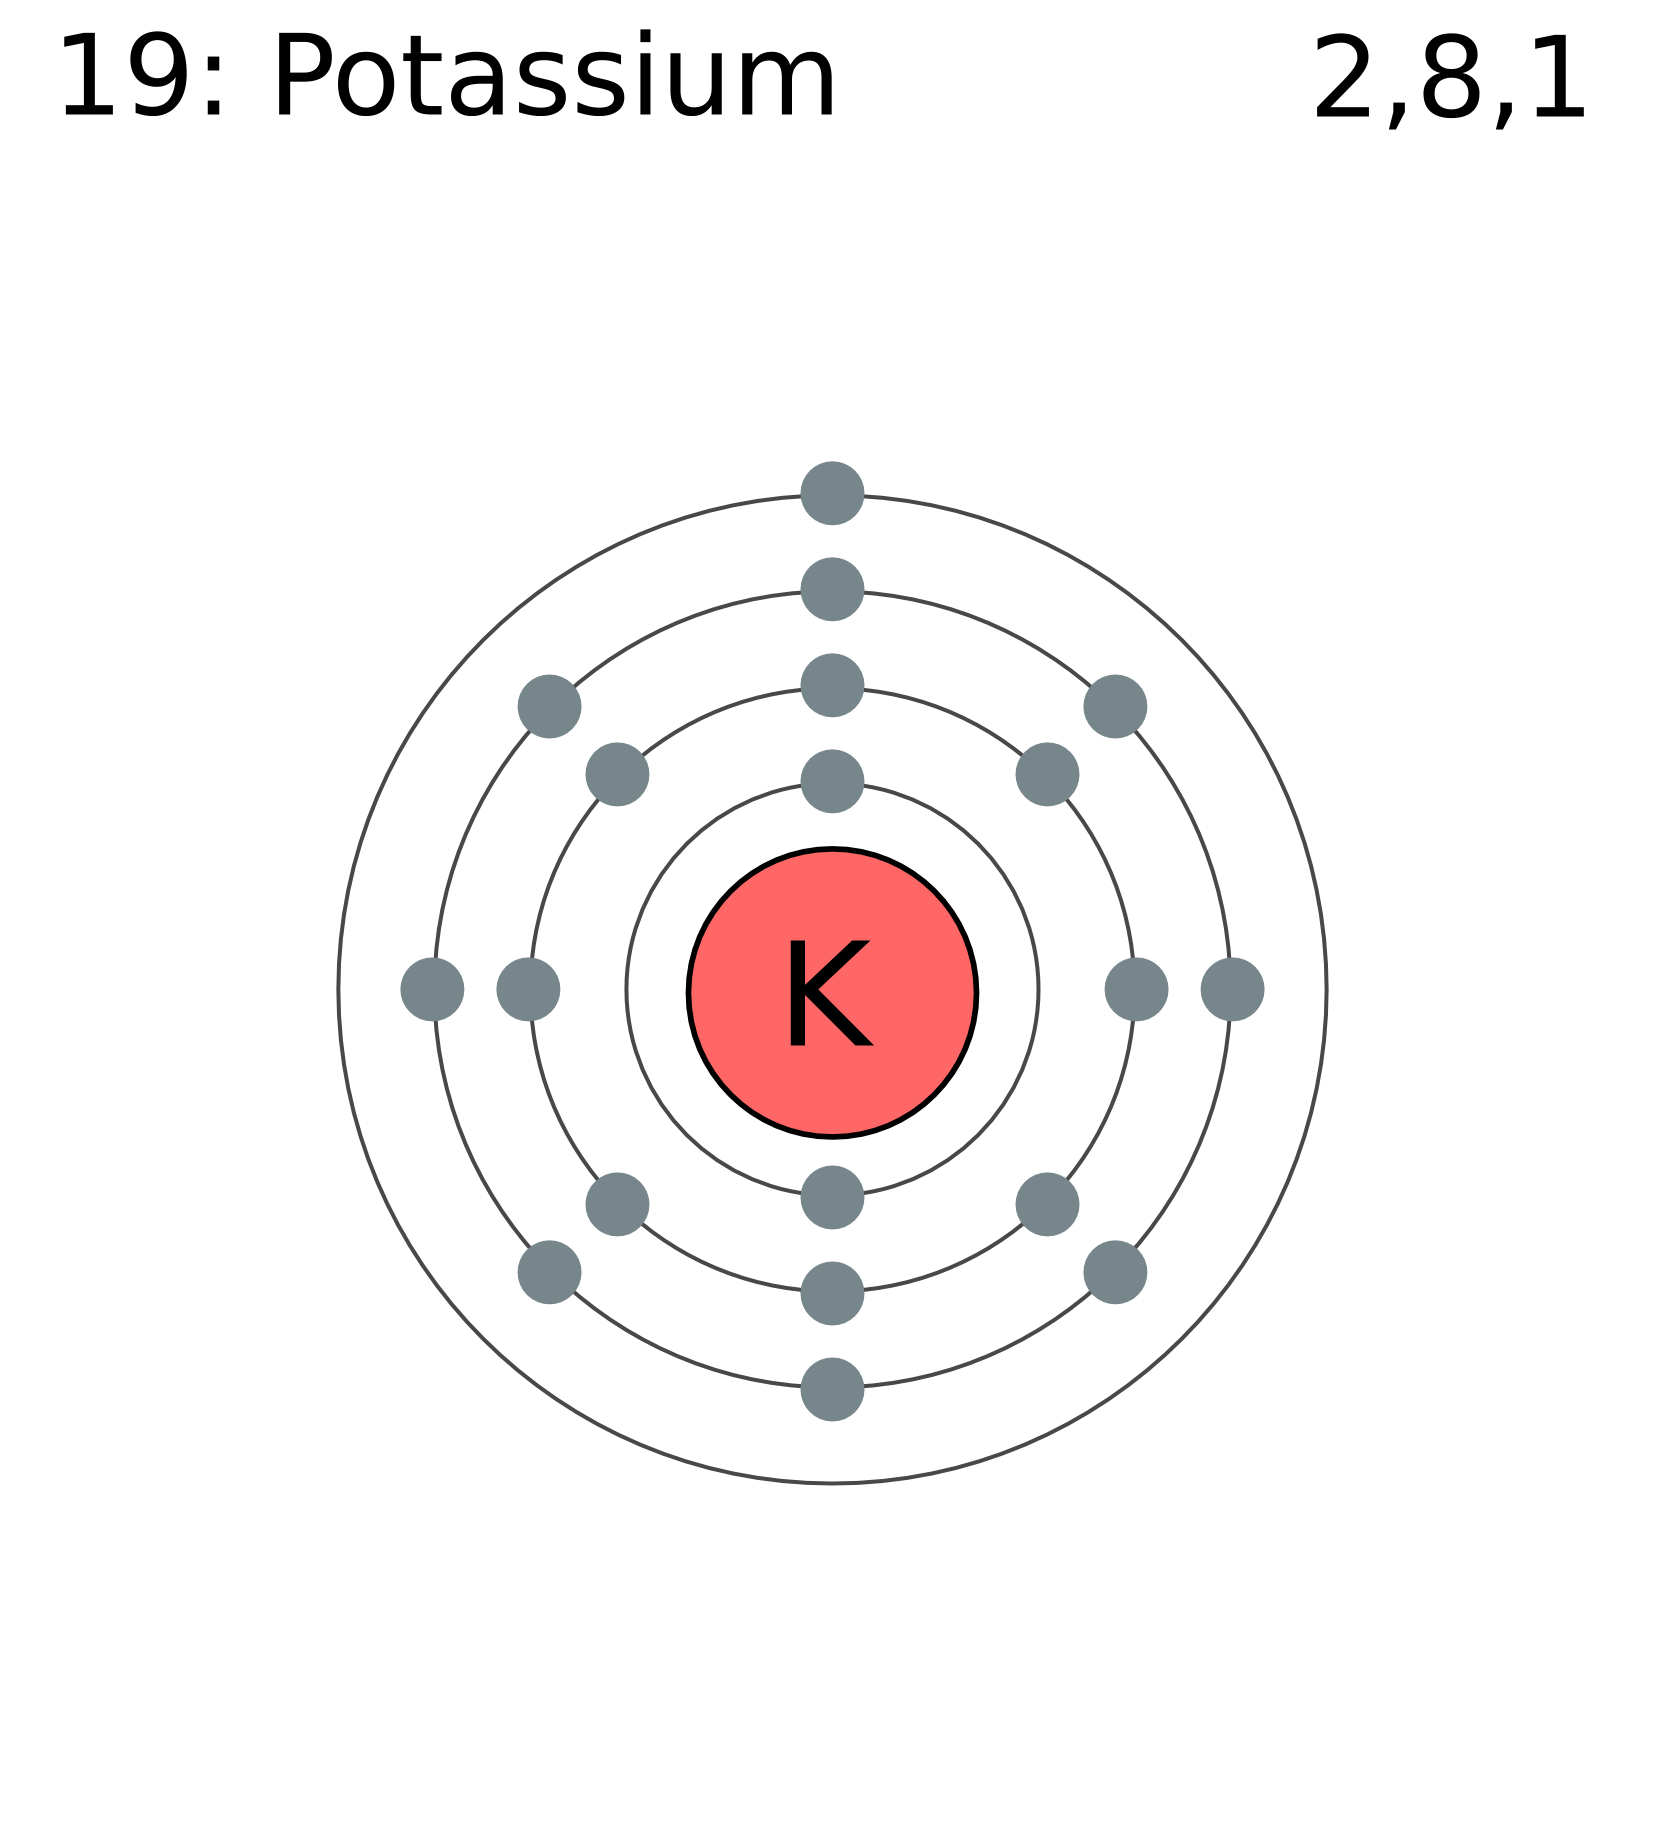 K Electron Configuration Potassium - Homeopathy...